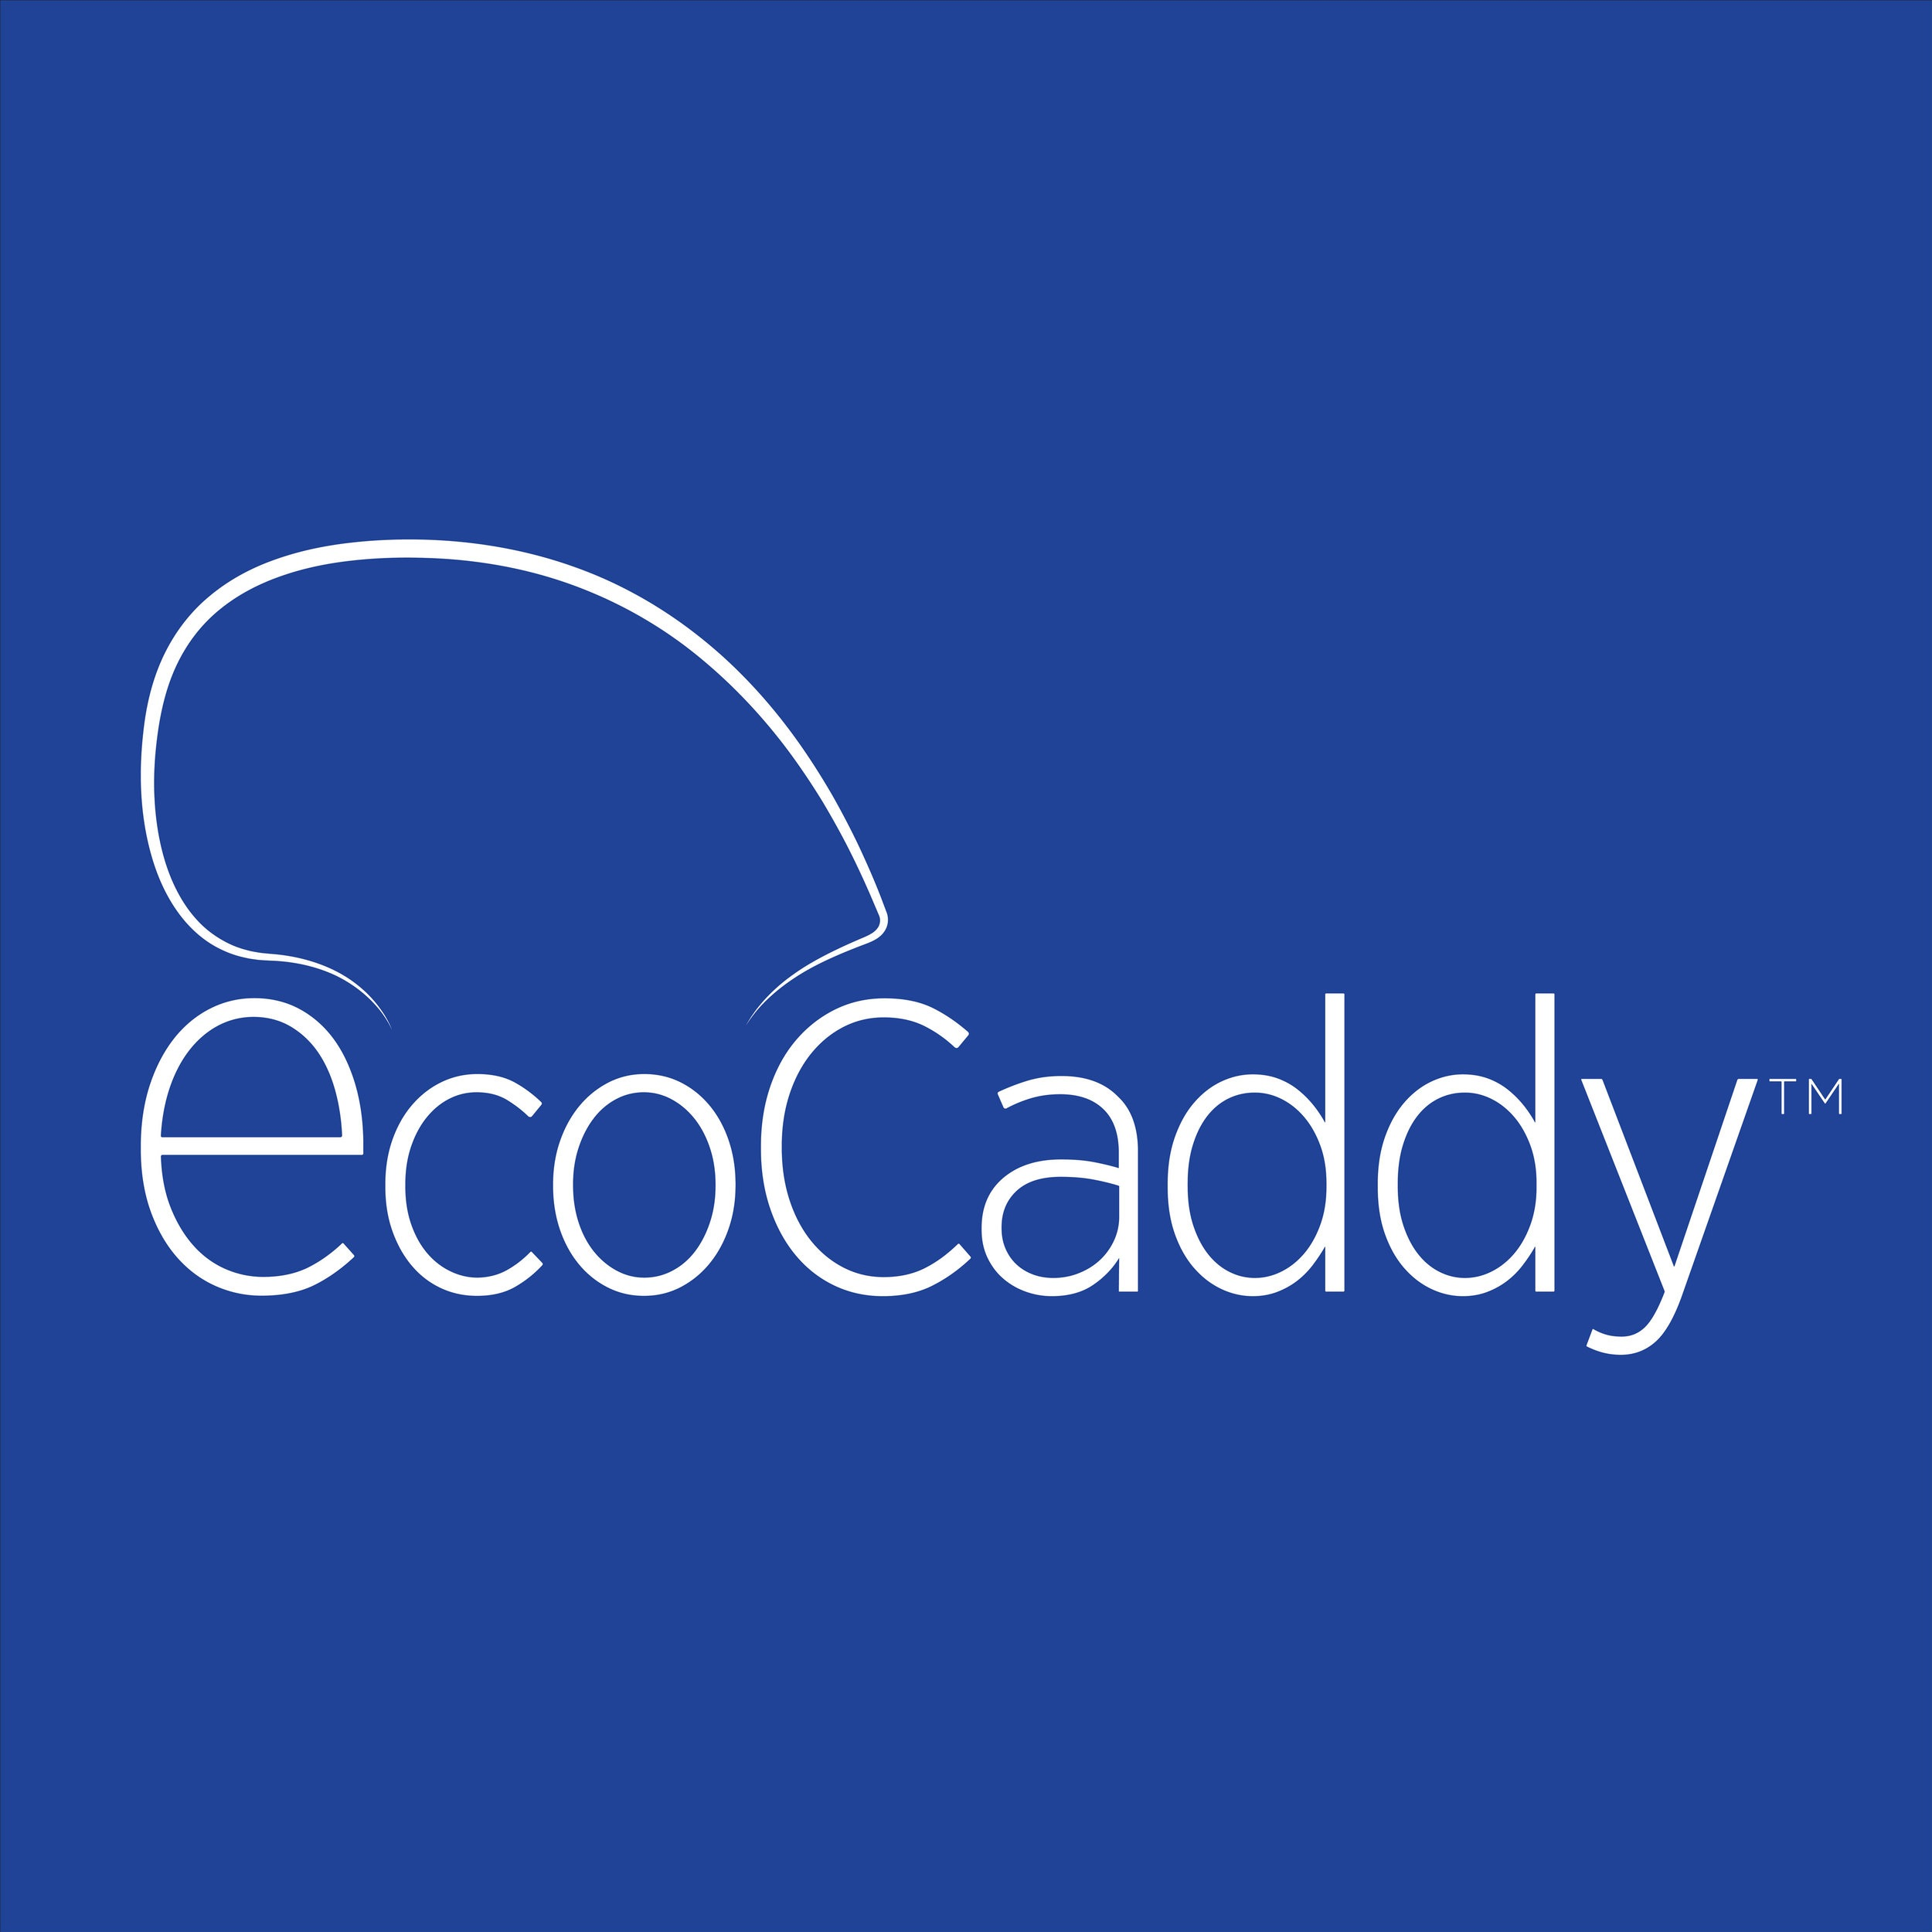 EcoCaddy-small-logo.jpg